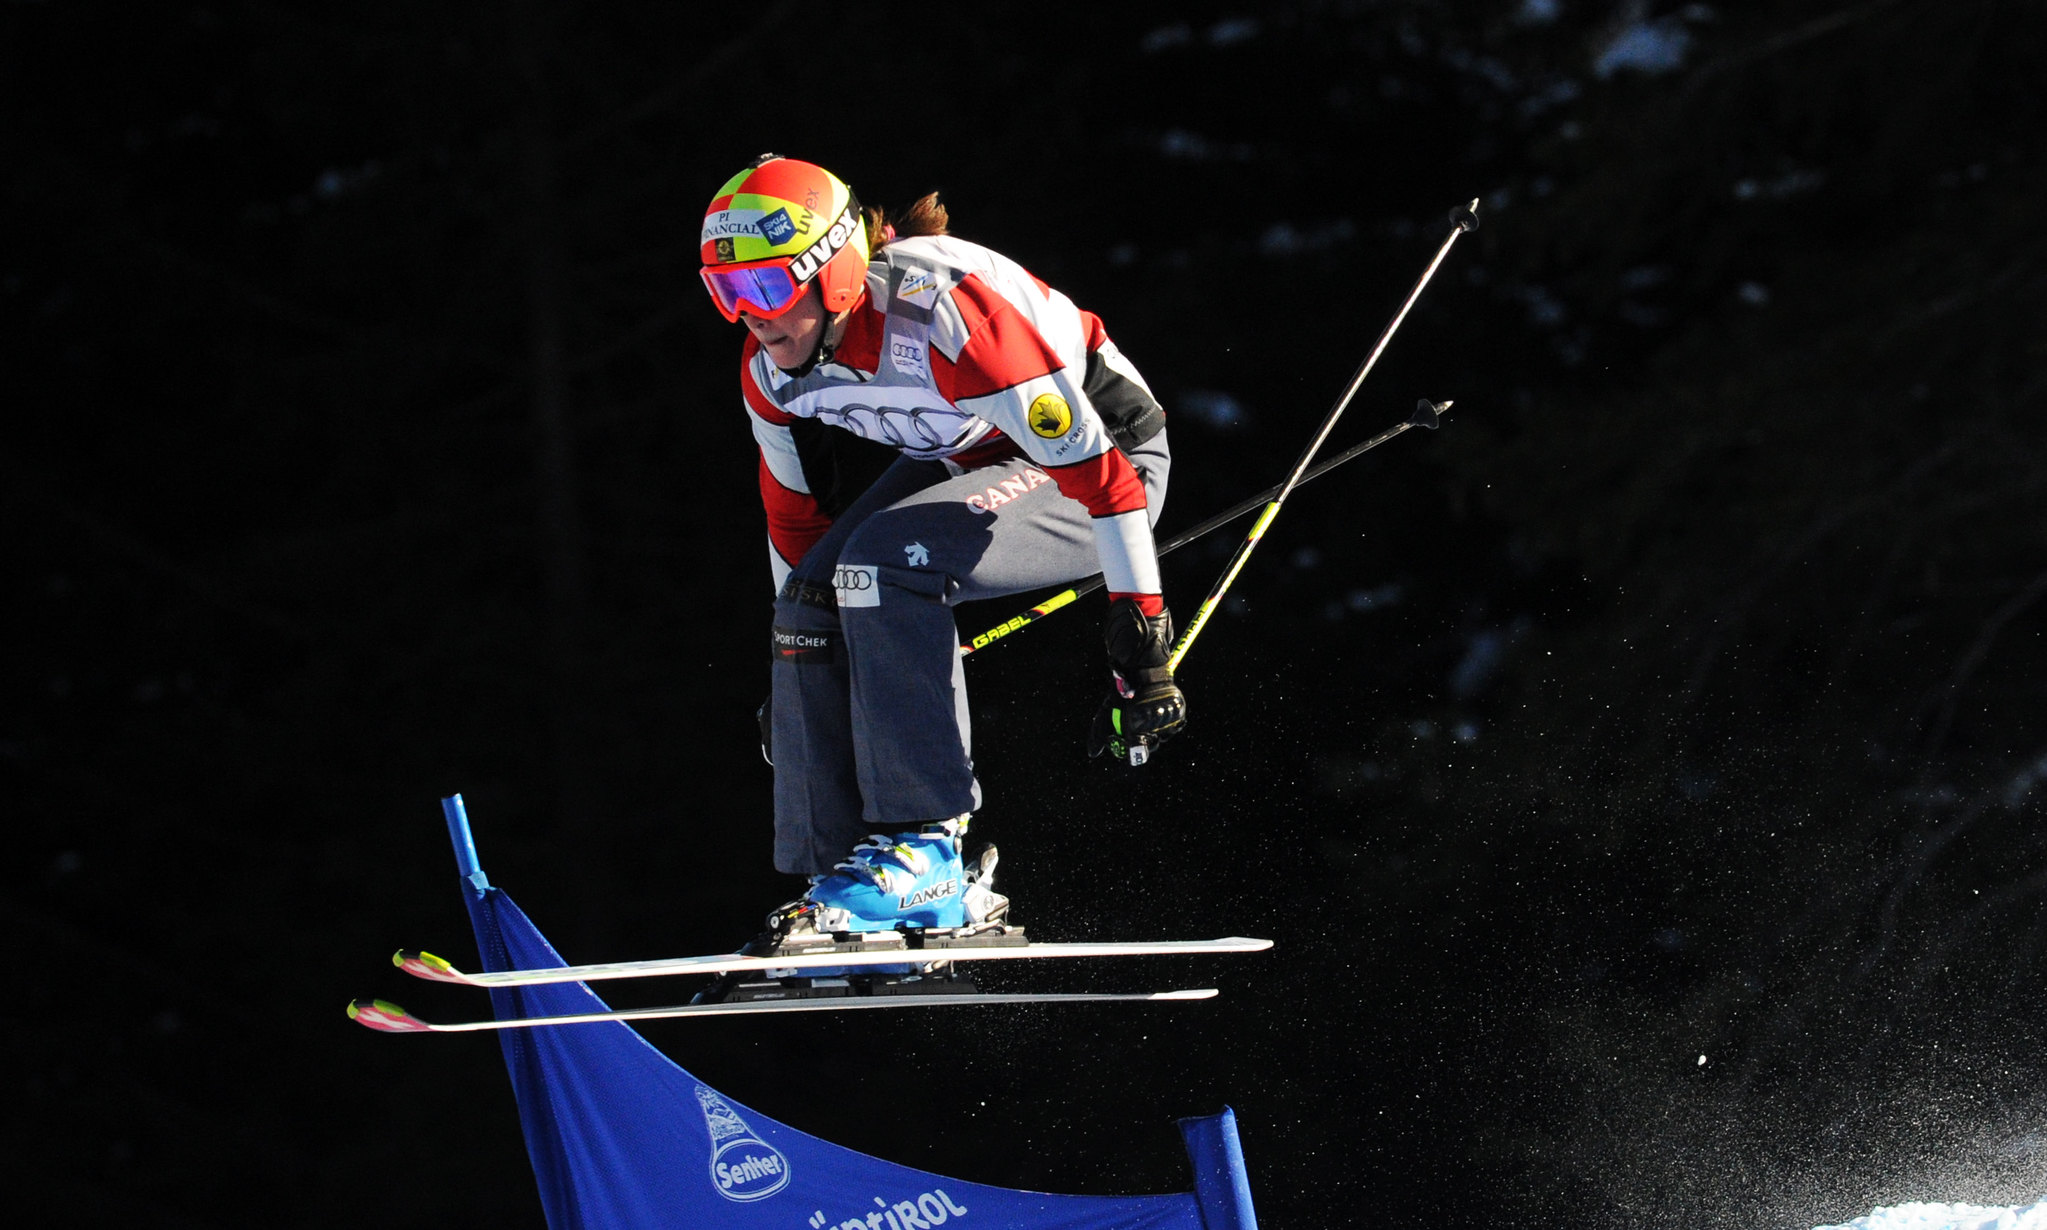 Marielle Thompson in a qualifying run at the ski cross World Cup in Innichen/San Candido, Italy.